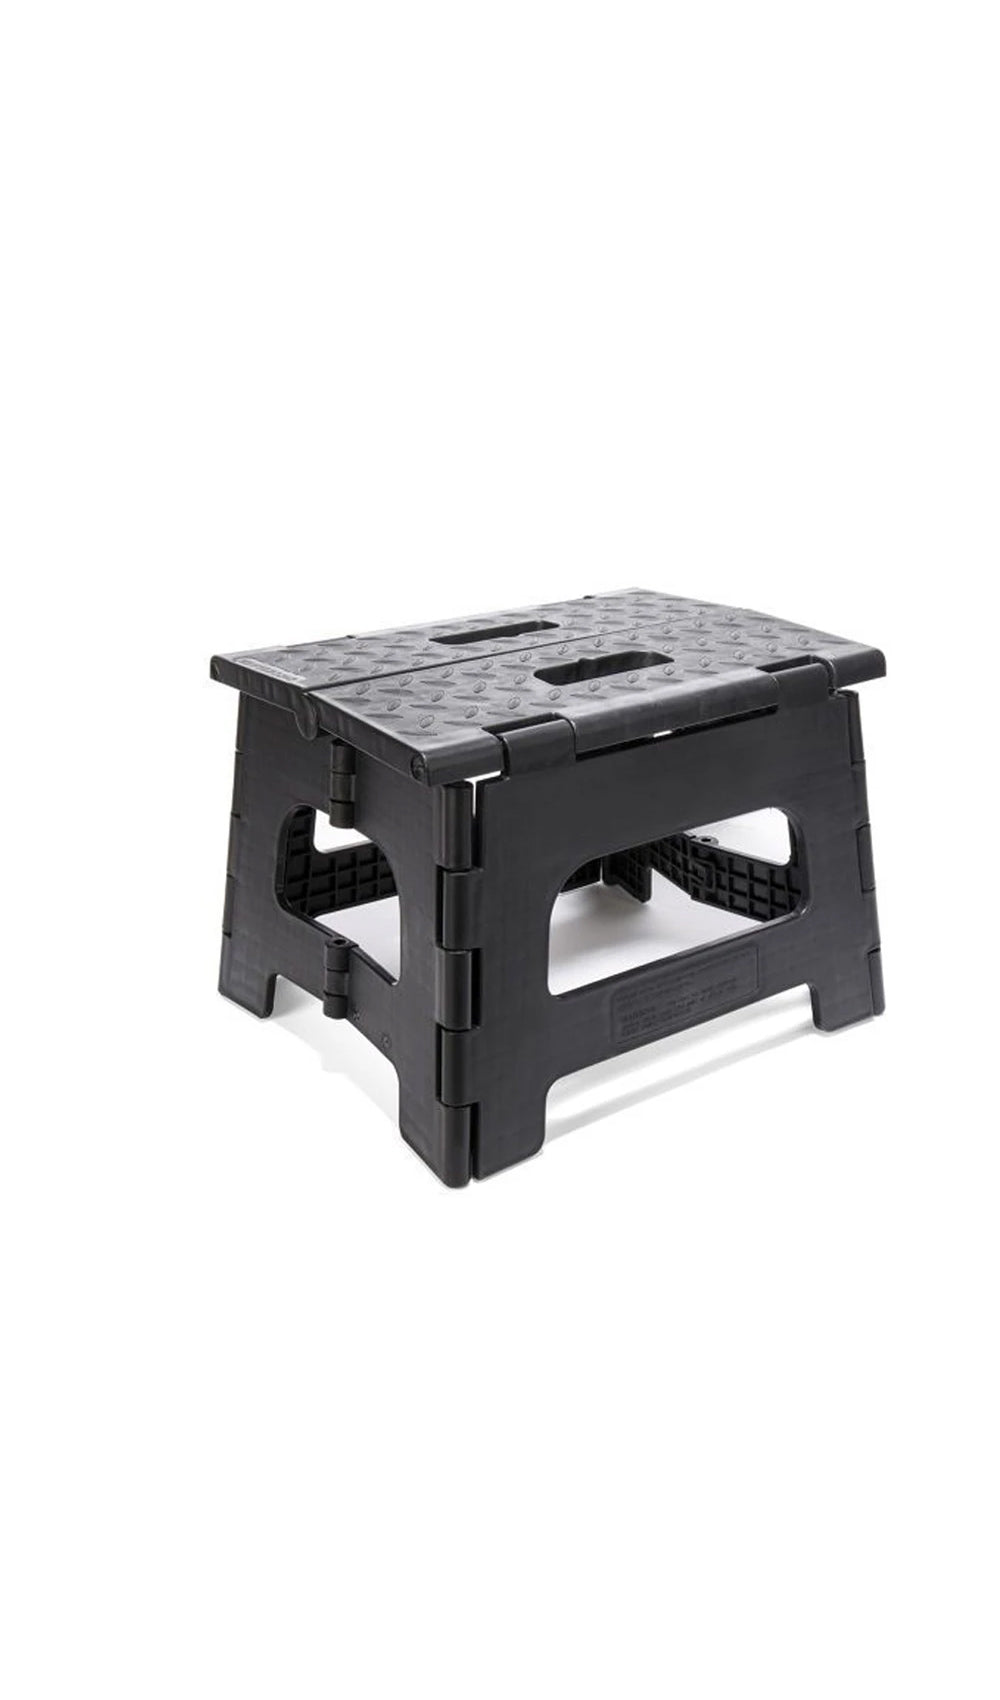 Easy Fold Step Stool - Black